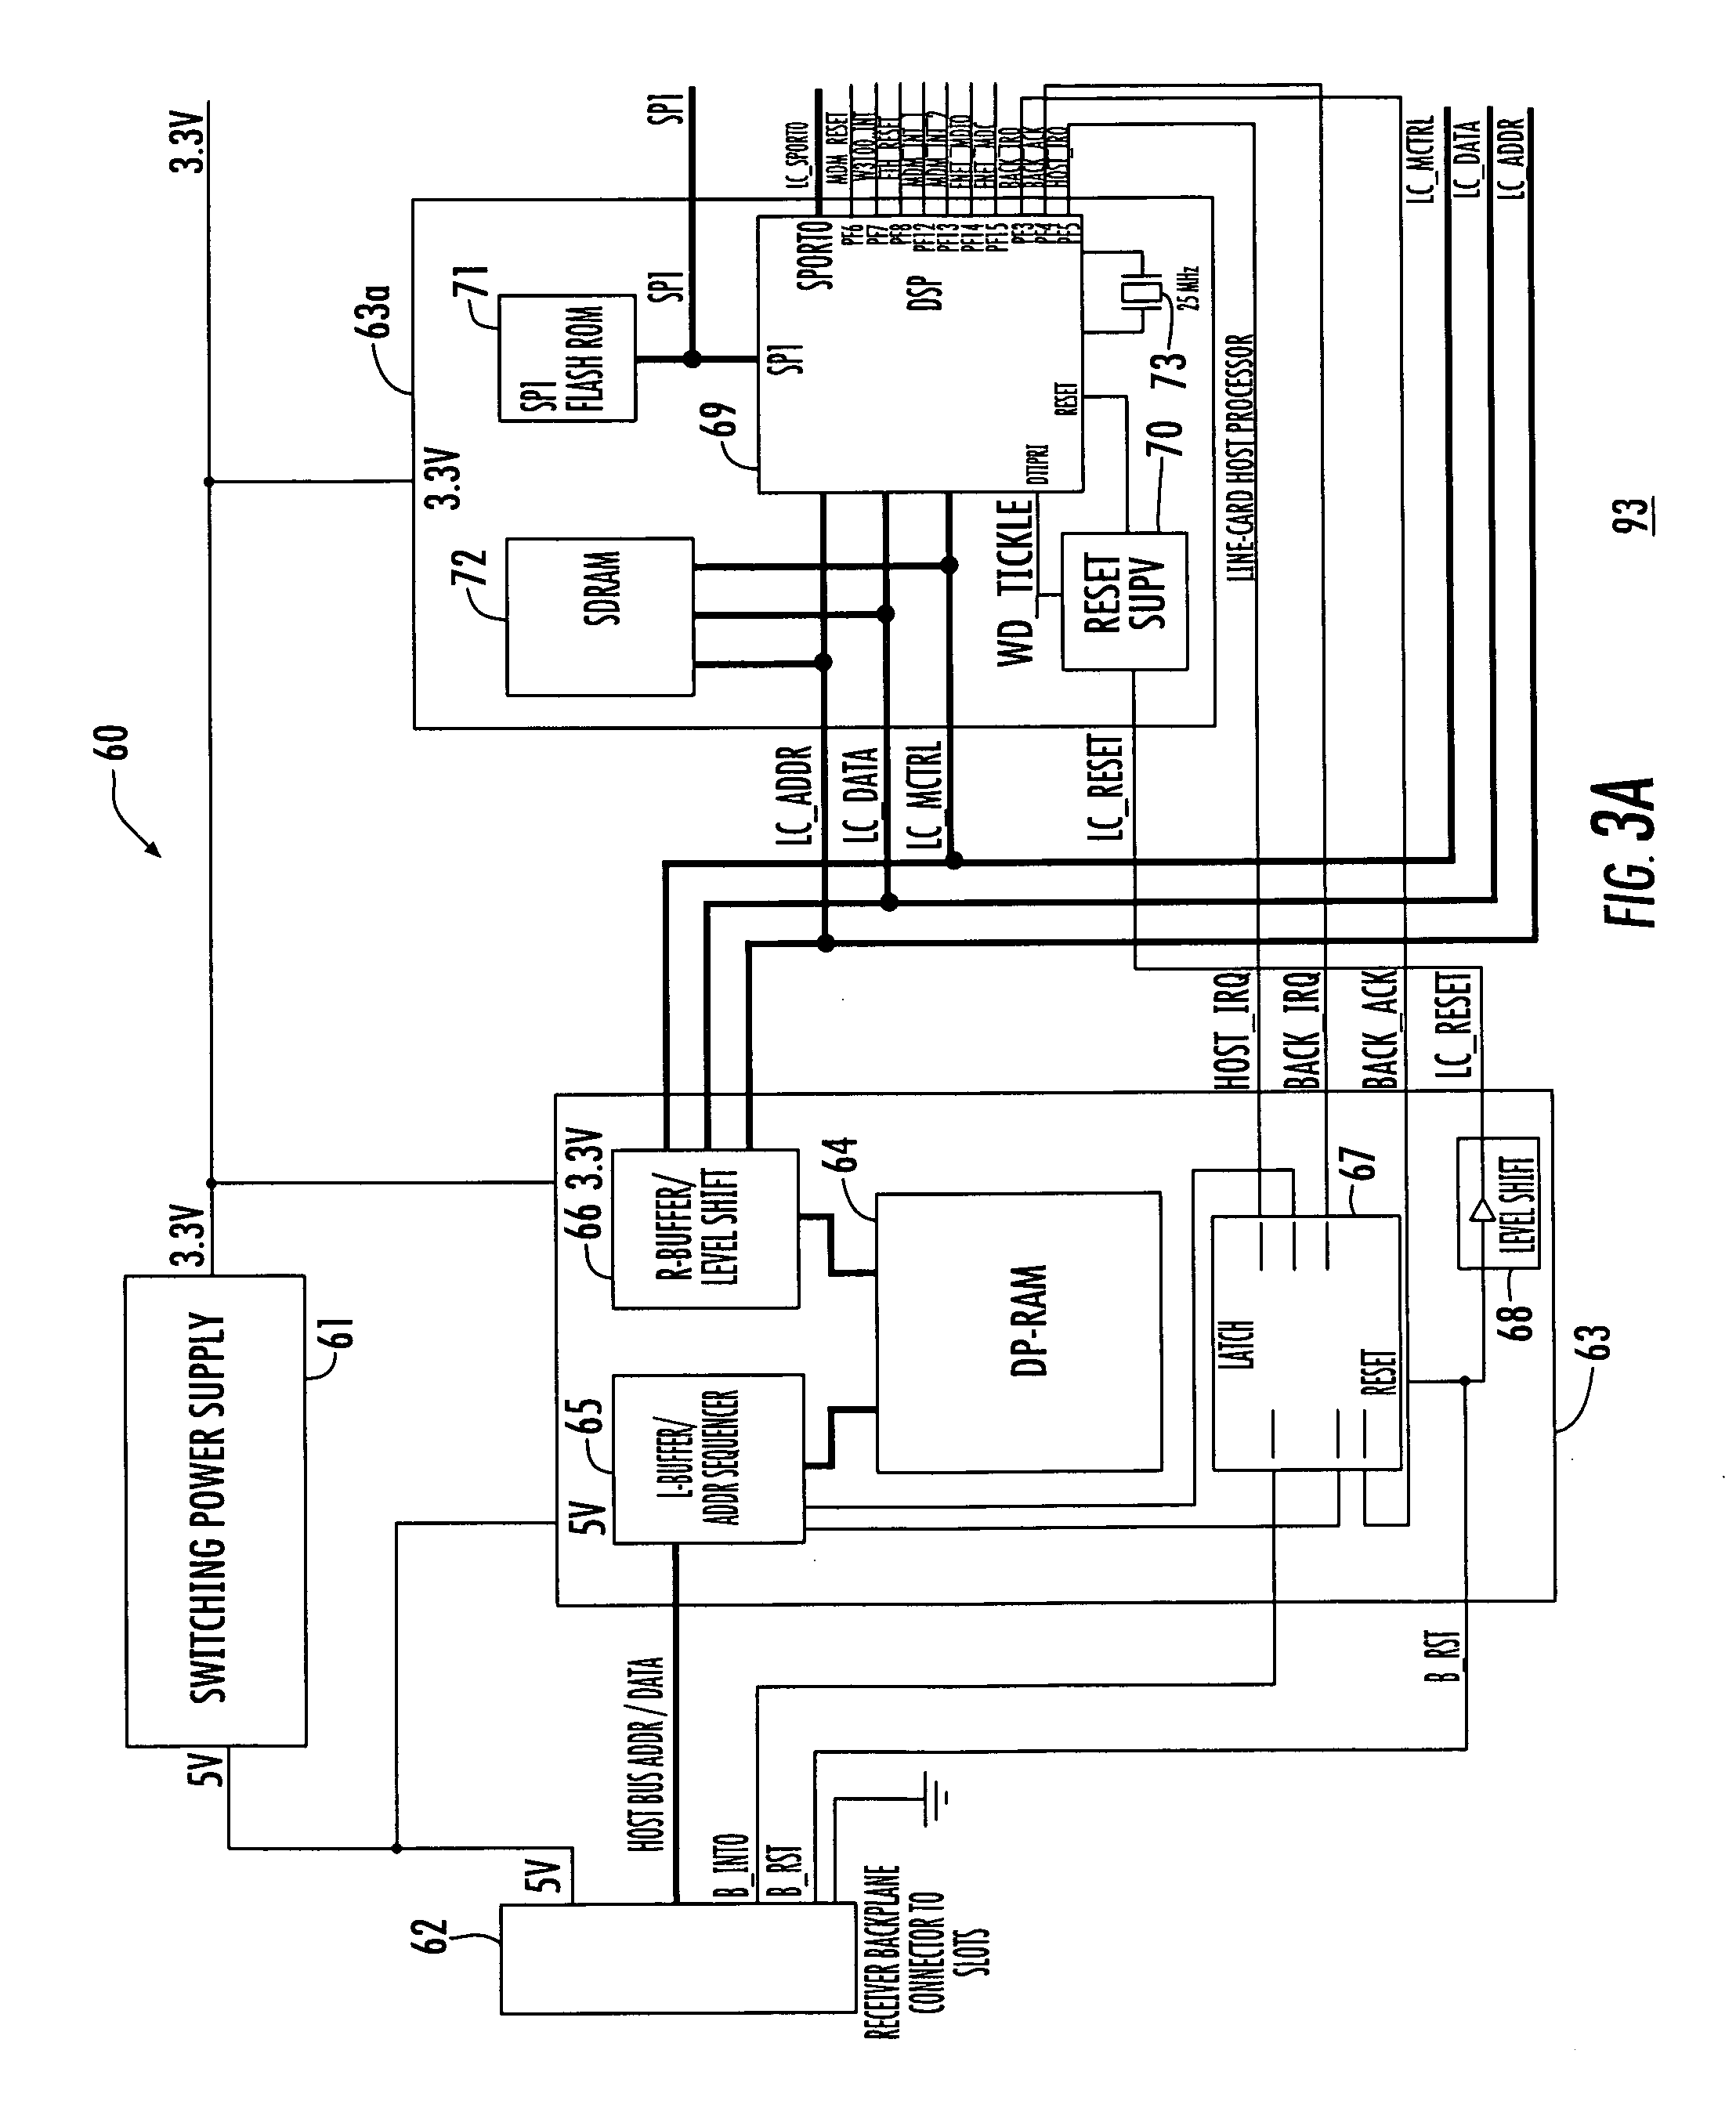 US20090058630A1 20090305 D00004?resize\\\\\\\=665%2C814 goodman sequencer wiring diagram fan sequencer circuit, marvair goodman sequencer wiring diagram at bayanpartner.co